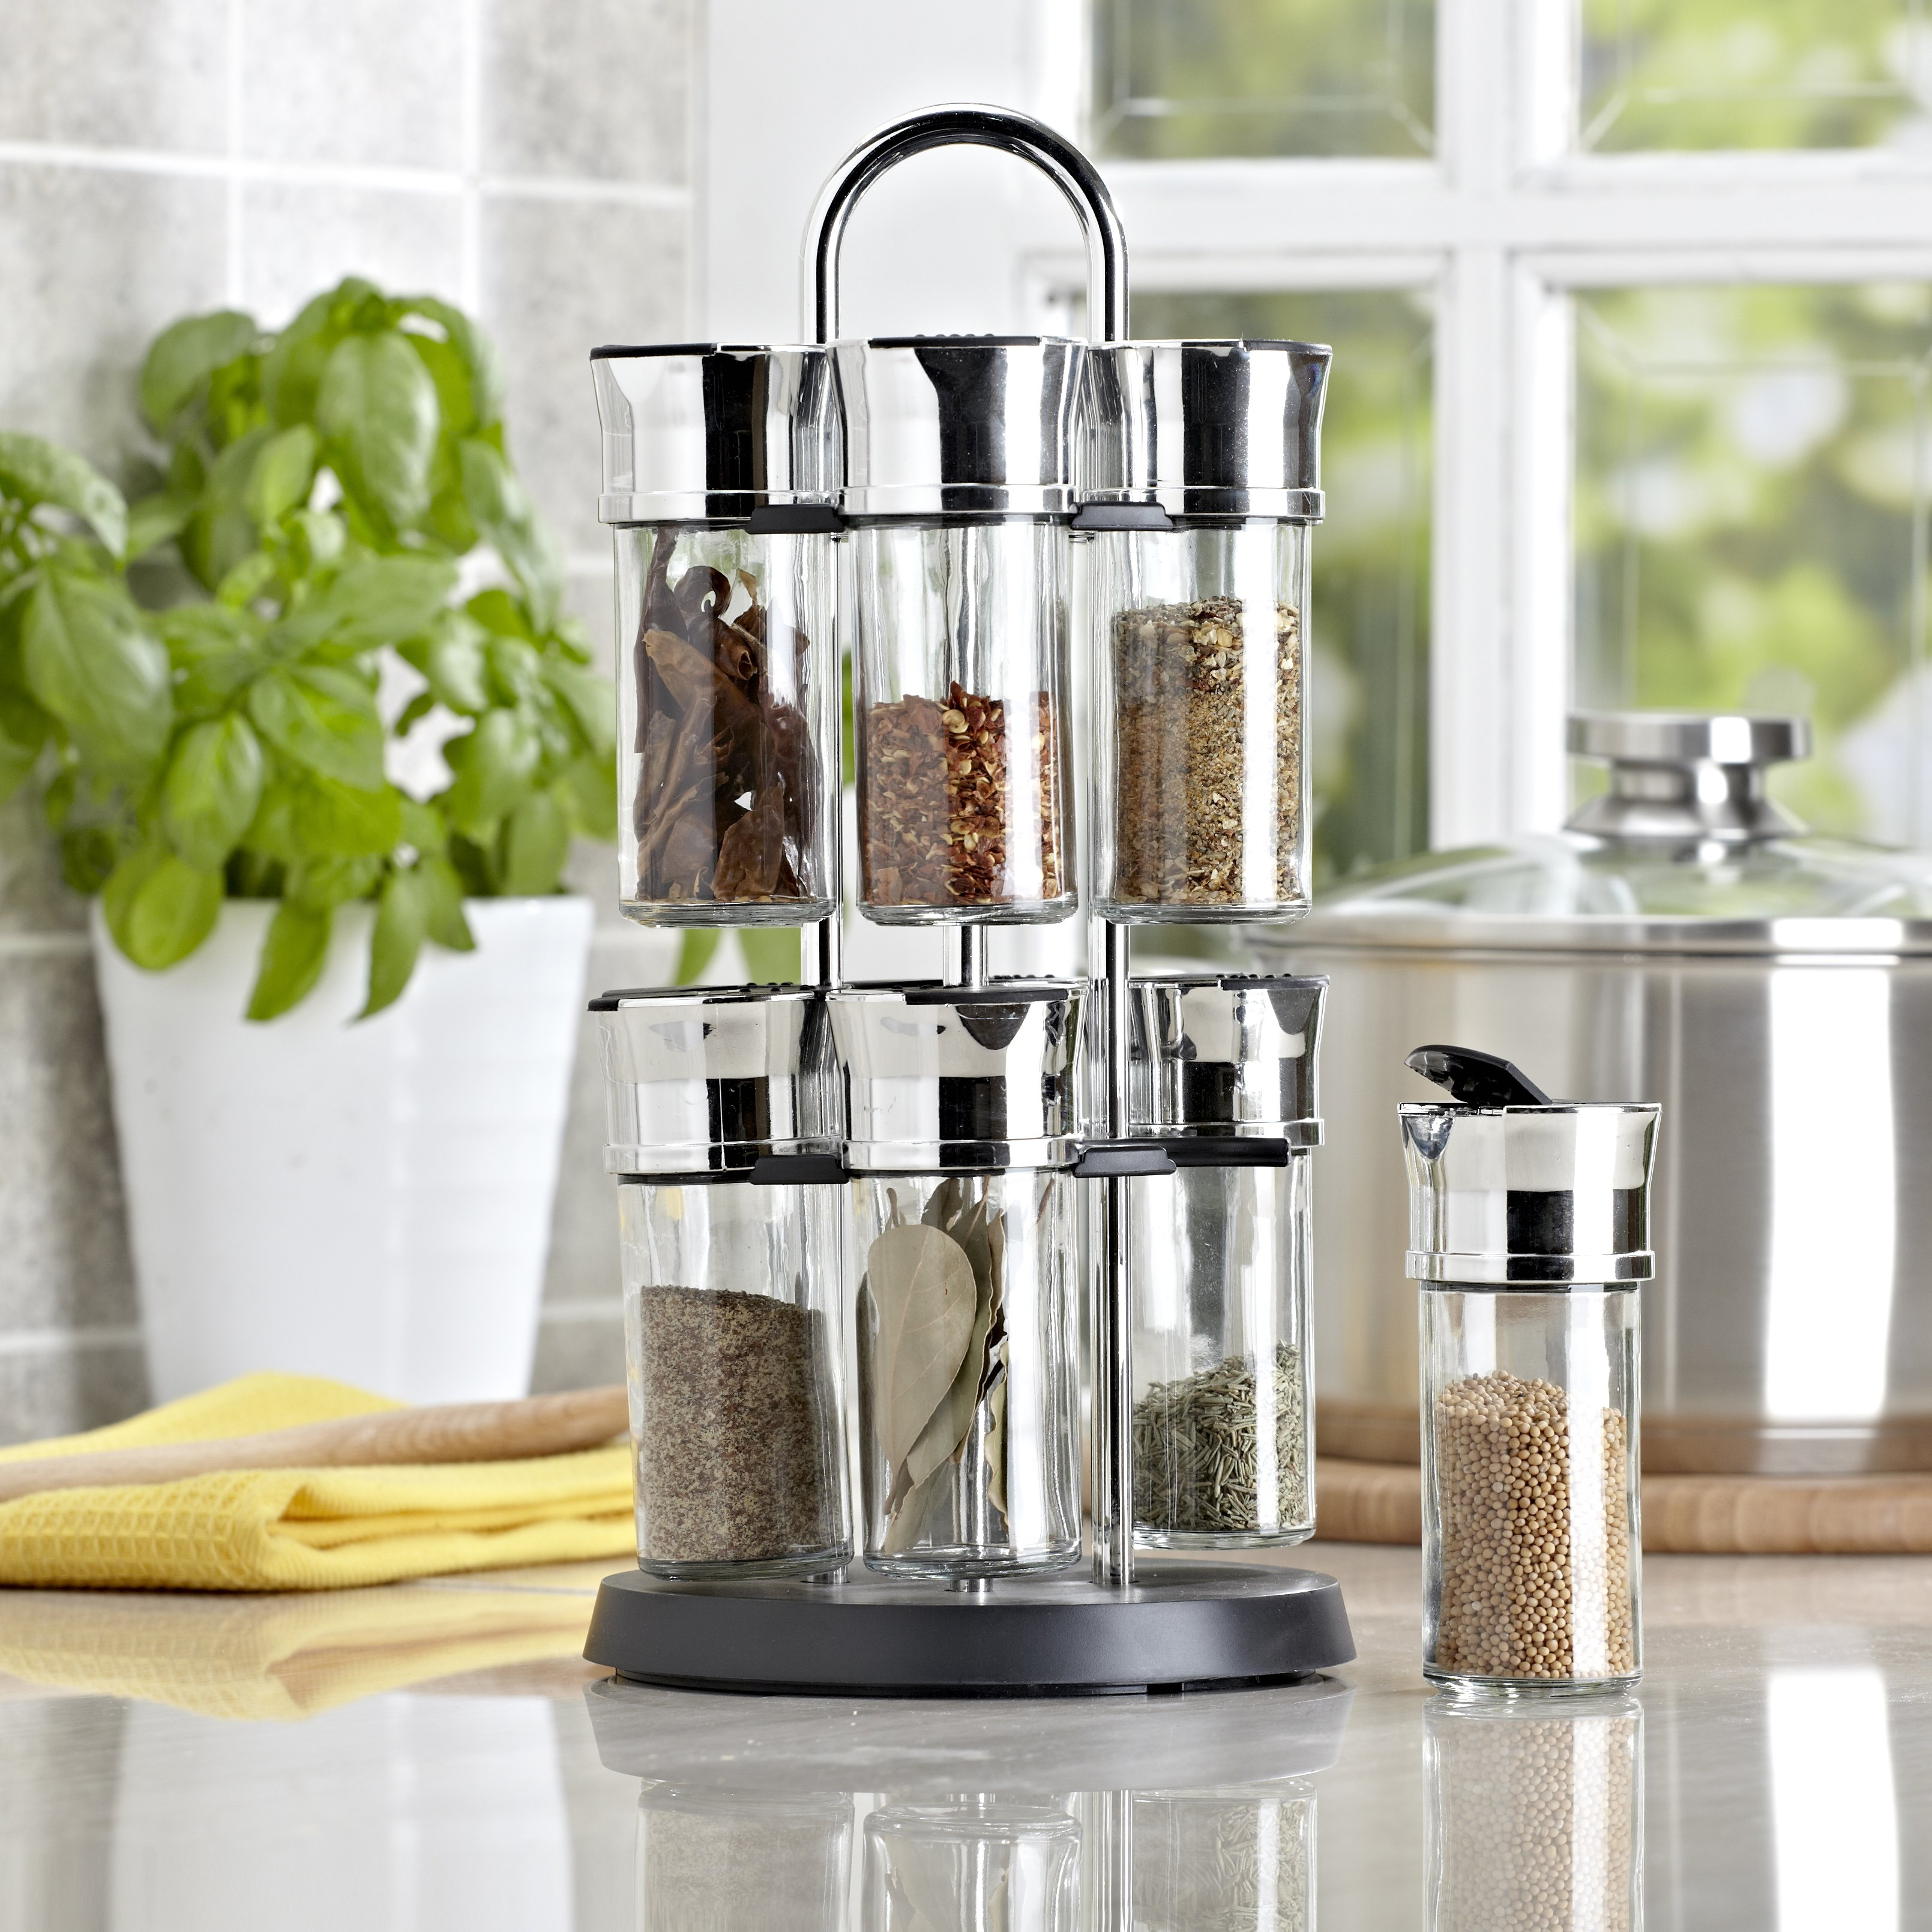 stainless steel spice rack with 2-tiers